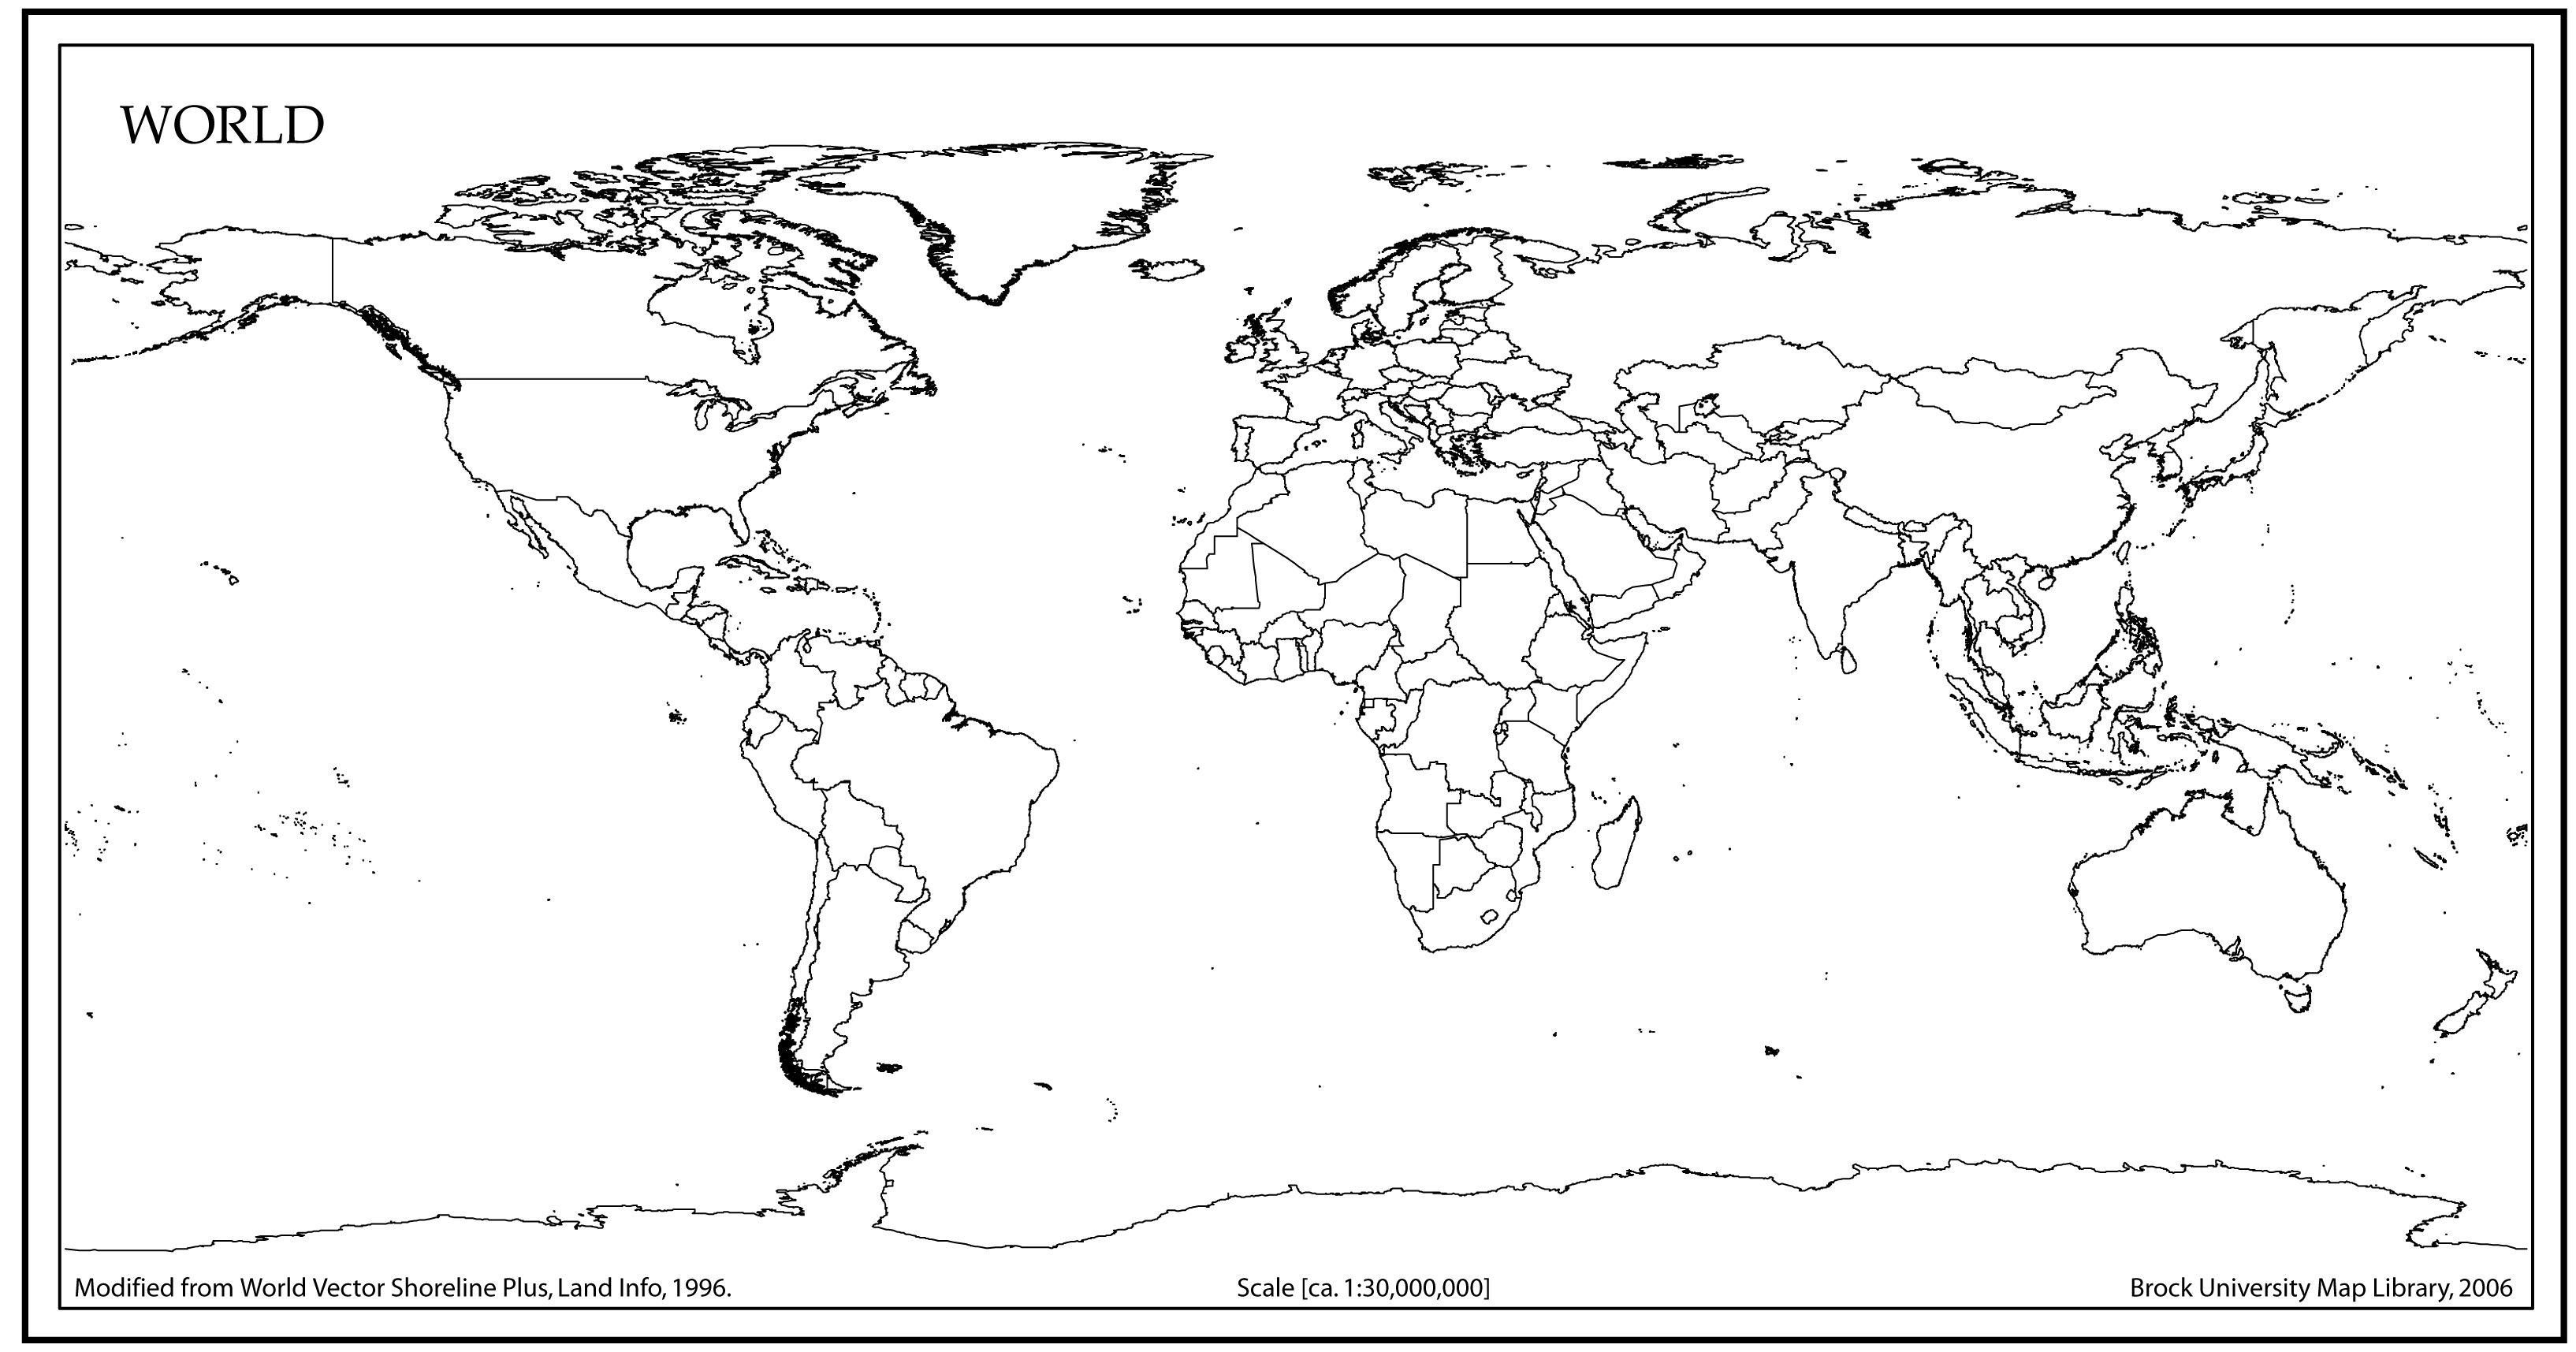 World Map Outline with Countries | World map | Pinterest | World